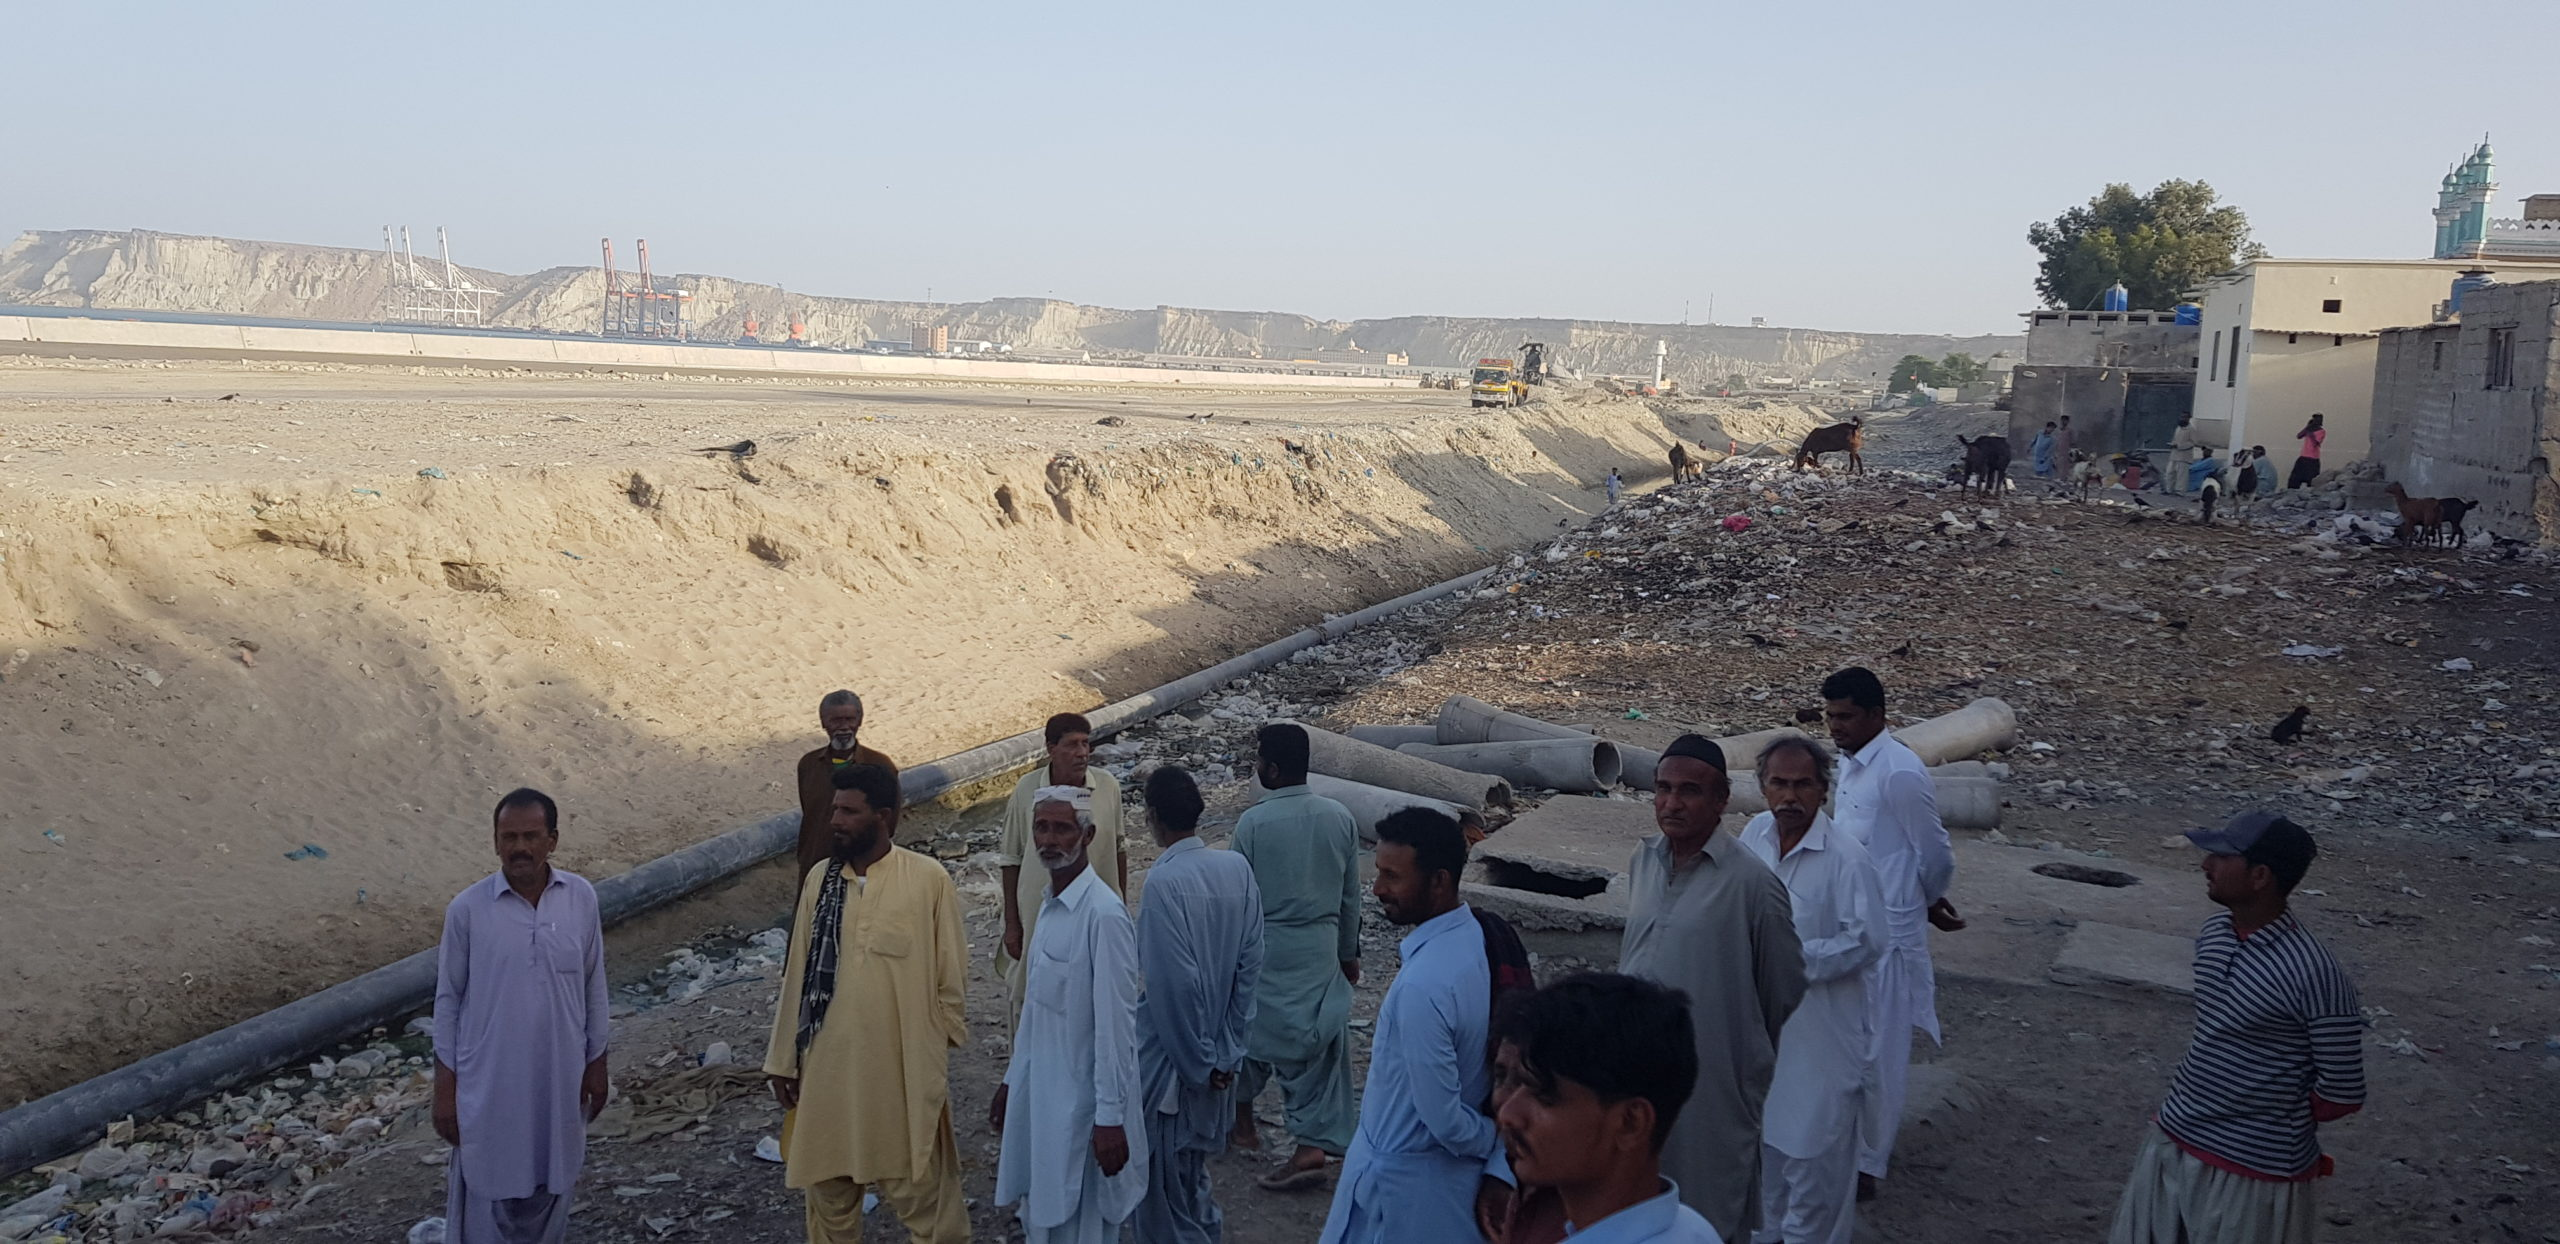 The Eastbay Expressway has blocked residents of Khulgari Ward's access to the sea, Zofeen T Ebrahim)